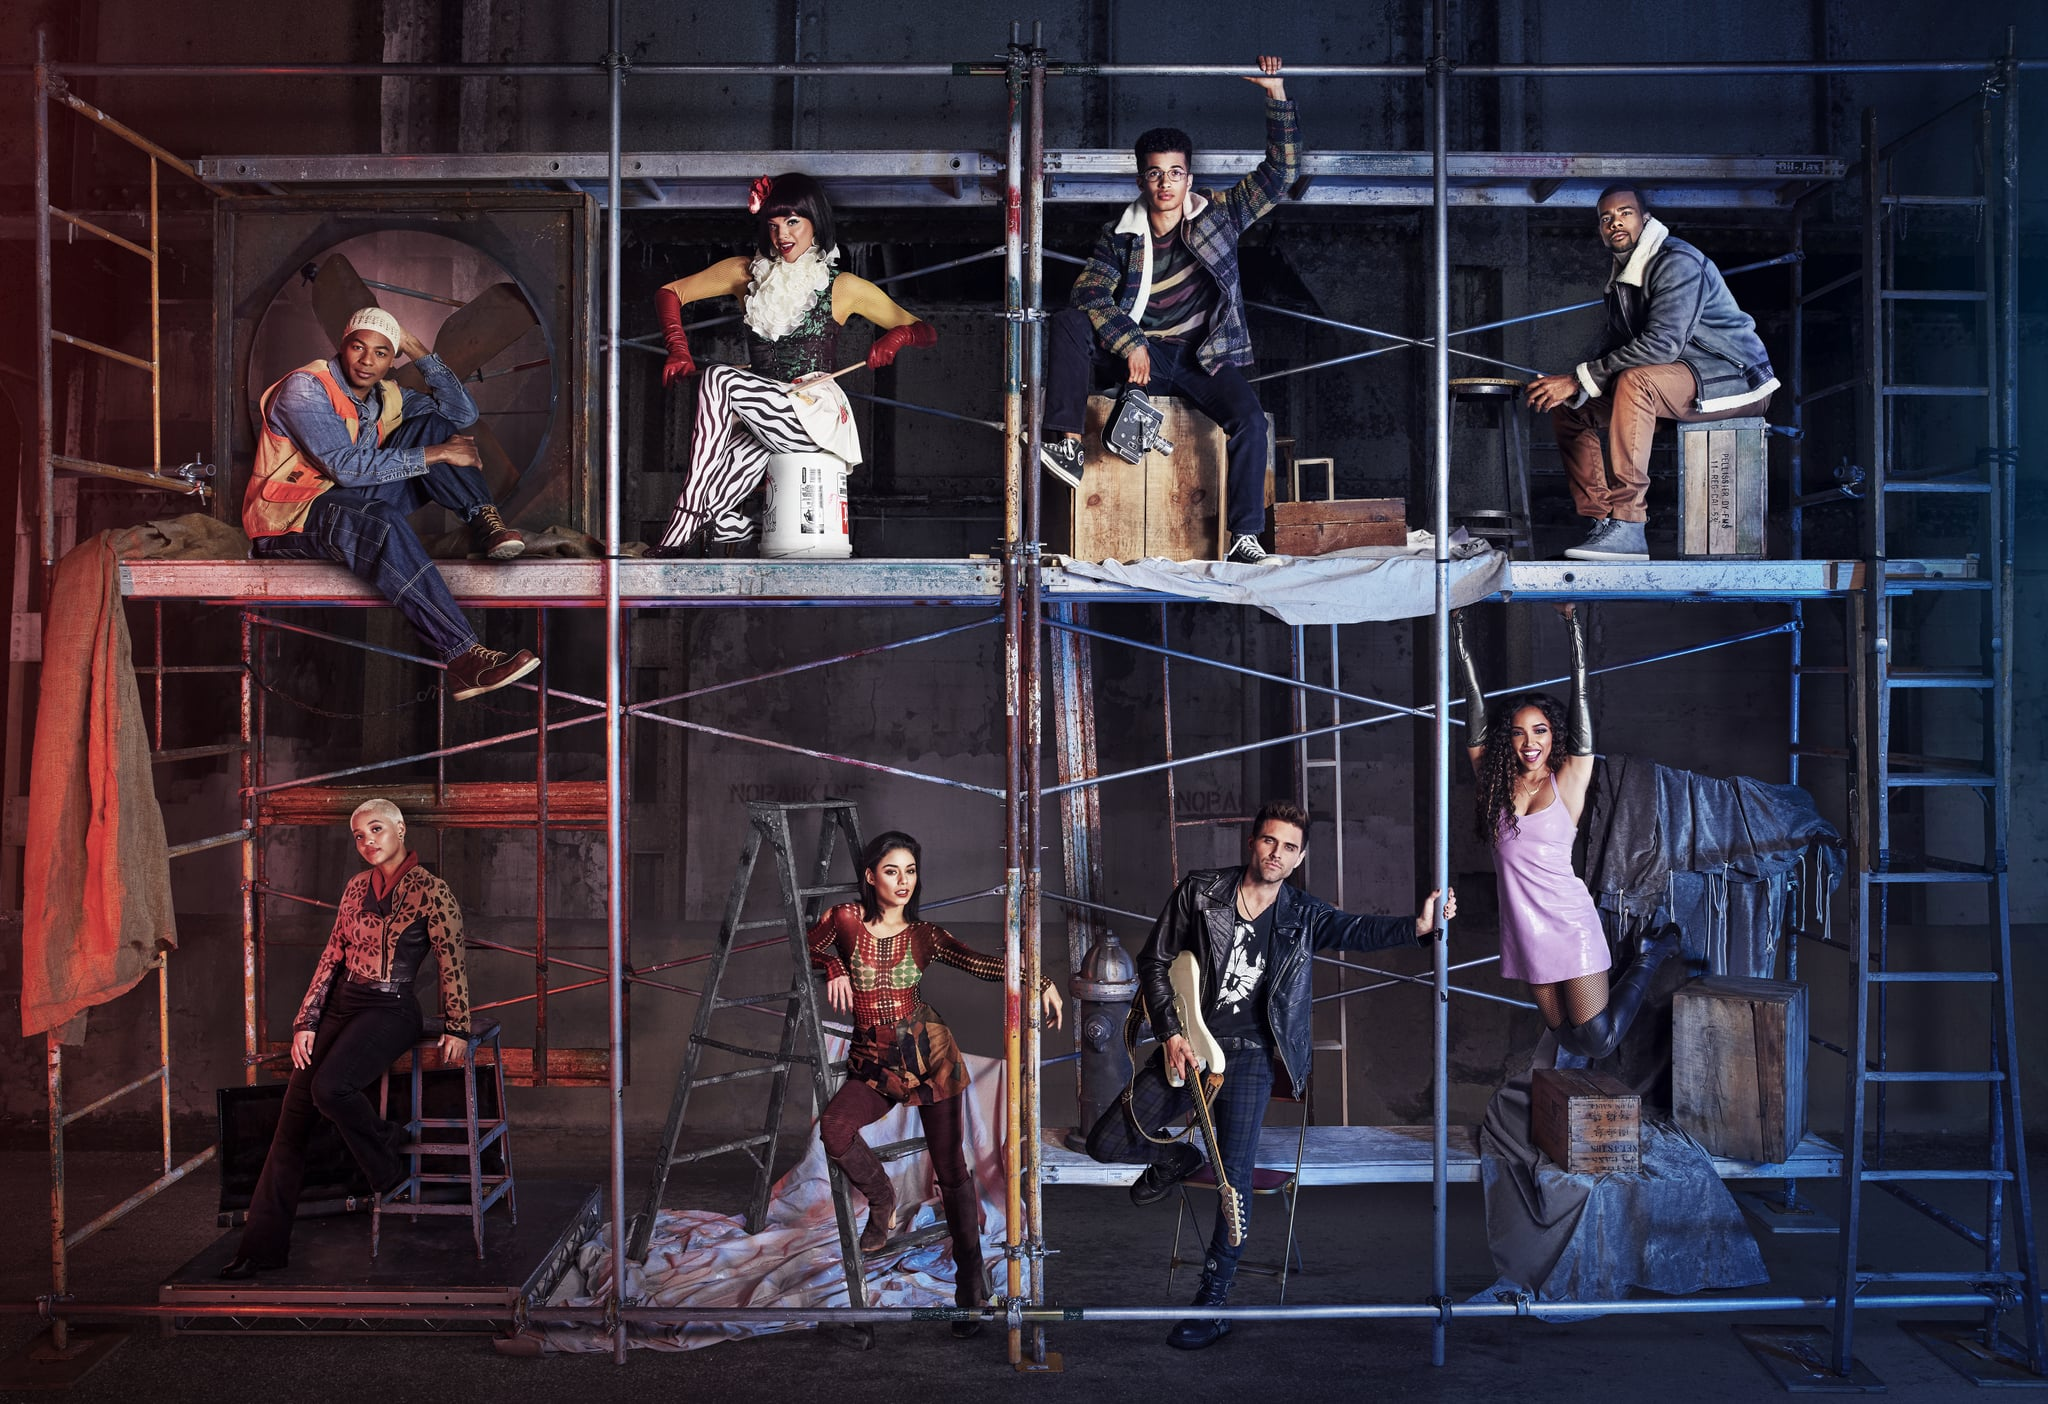 RENT: Top L-R to Bottom L-R: Brandon Victor Dixon as Tom Collins, Valentina as Angel Dumont Schunard, Jordan Fisher as Mark Cohen, Mario as Benjamin Coffin III, Kiersey Clemons as Joanne Jefferson, Vanessa Hudgens as Maureen Johnson, Brennin Hunt as Roger Davis and Tinashe as Mimi Marquez in RENT airing Sunday, Jan. 27 (8:00-11:00 PM ET LIVE/PT TAPE-DELAYED) on FOX. ©2019 Fox Broadcasting Co. CR: Pamela Littky/FOX